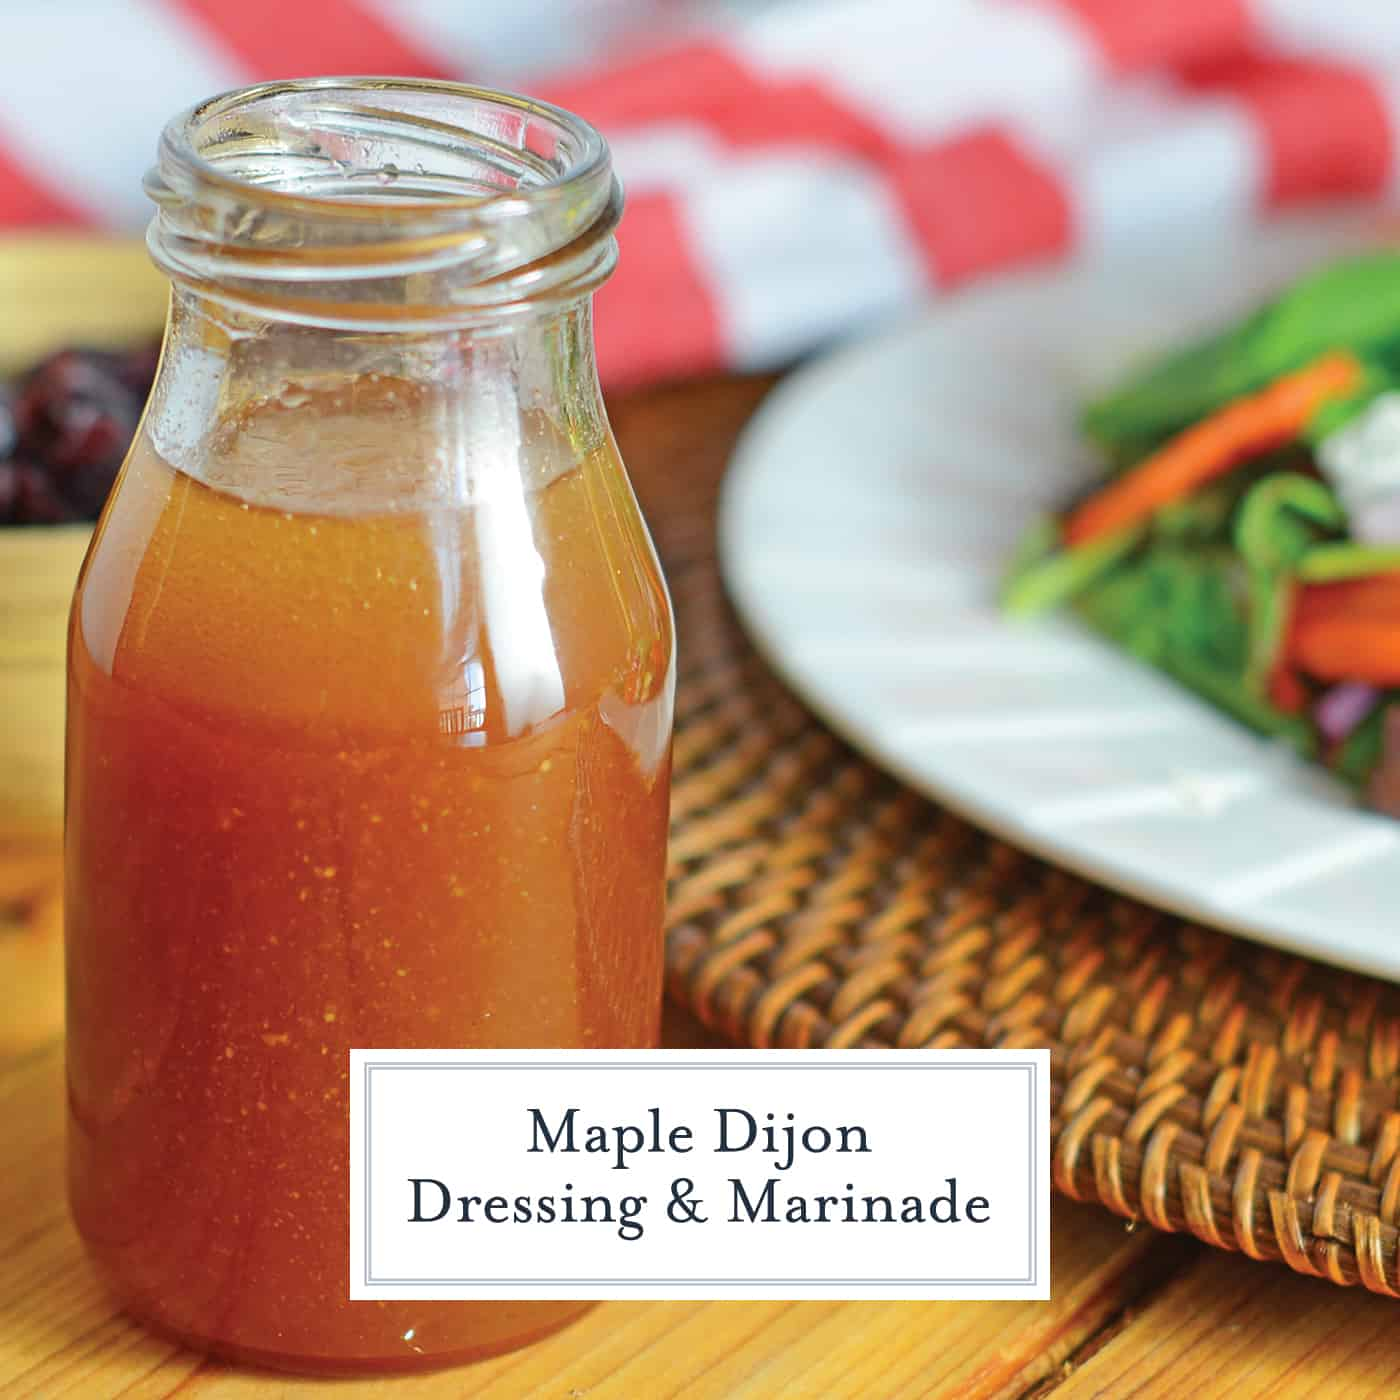 Maple Dijon Dressing is a tasty and simple homemade salad dressing! This dressing with maple syrup will complement any salad or grilled vegetable platter! #dressingwithmaplesyrup #homemadesaladdressing #dijonvinaigrette www.savoryexperiments.com